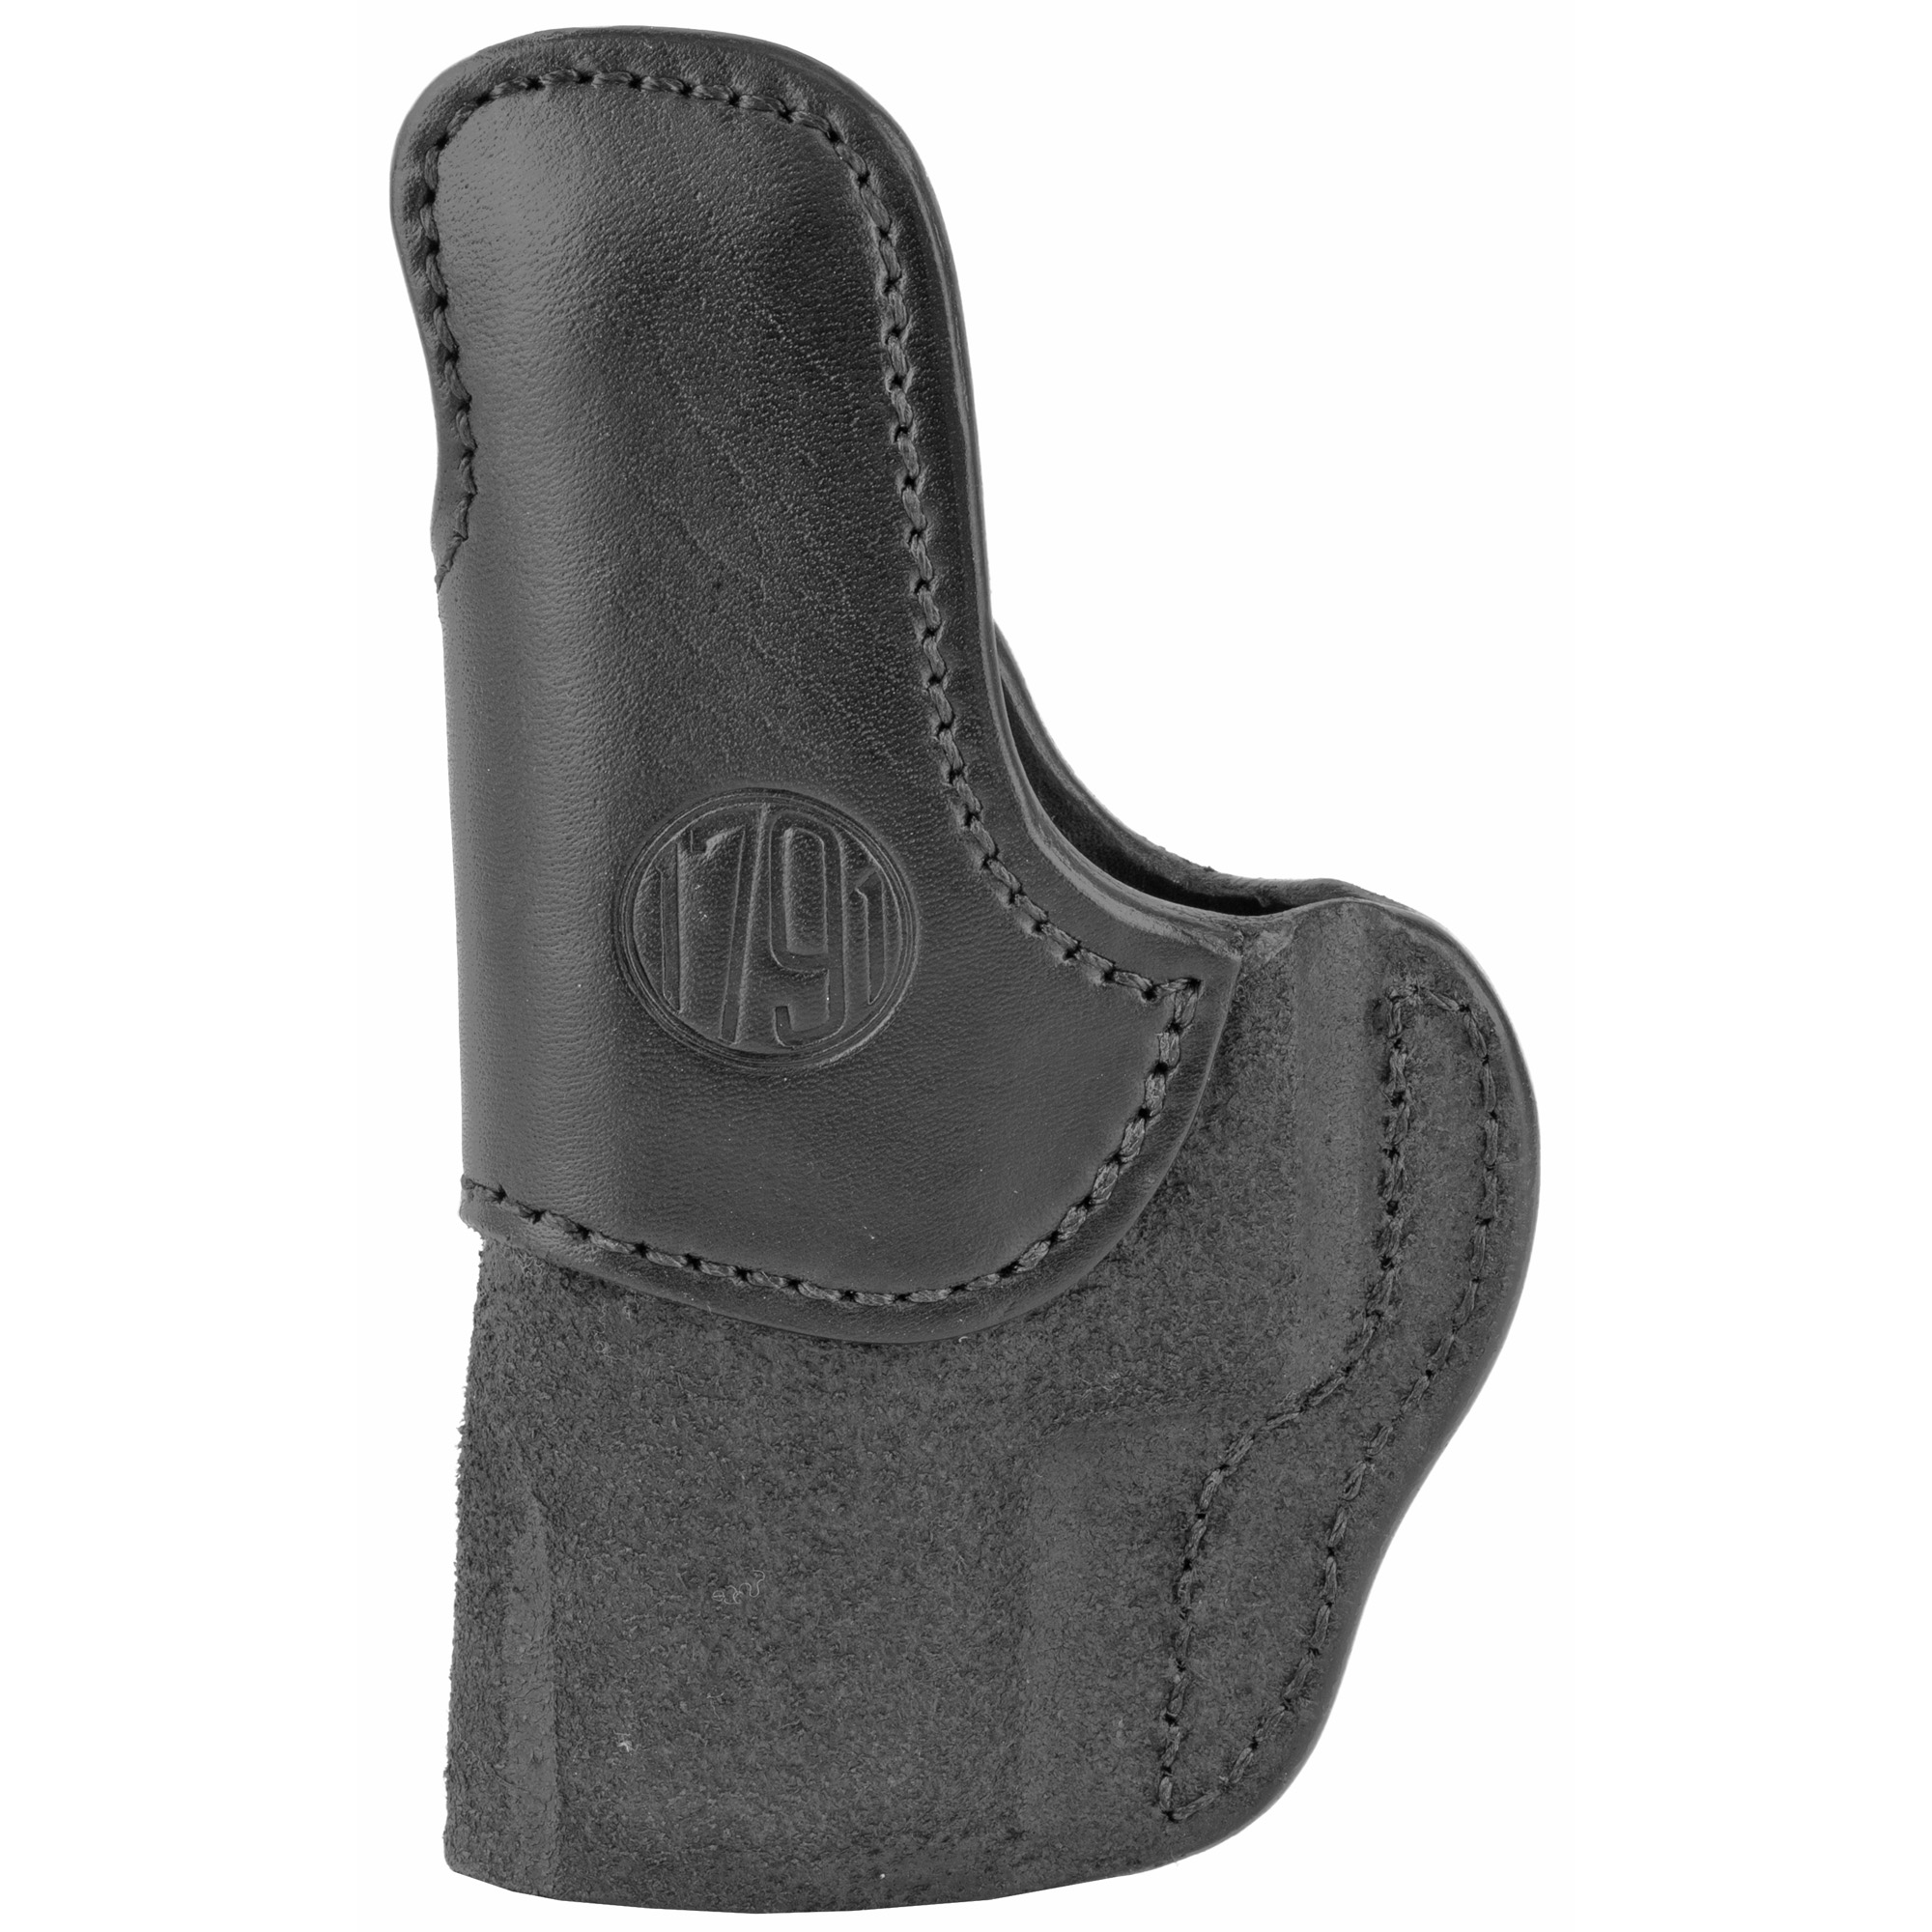 1790 Rigid Cncl Holster Size 3 Bl